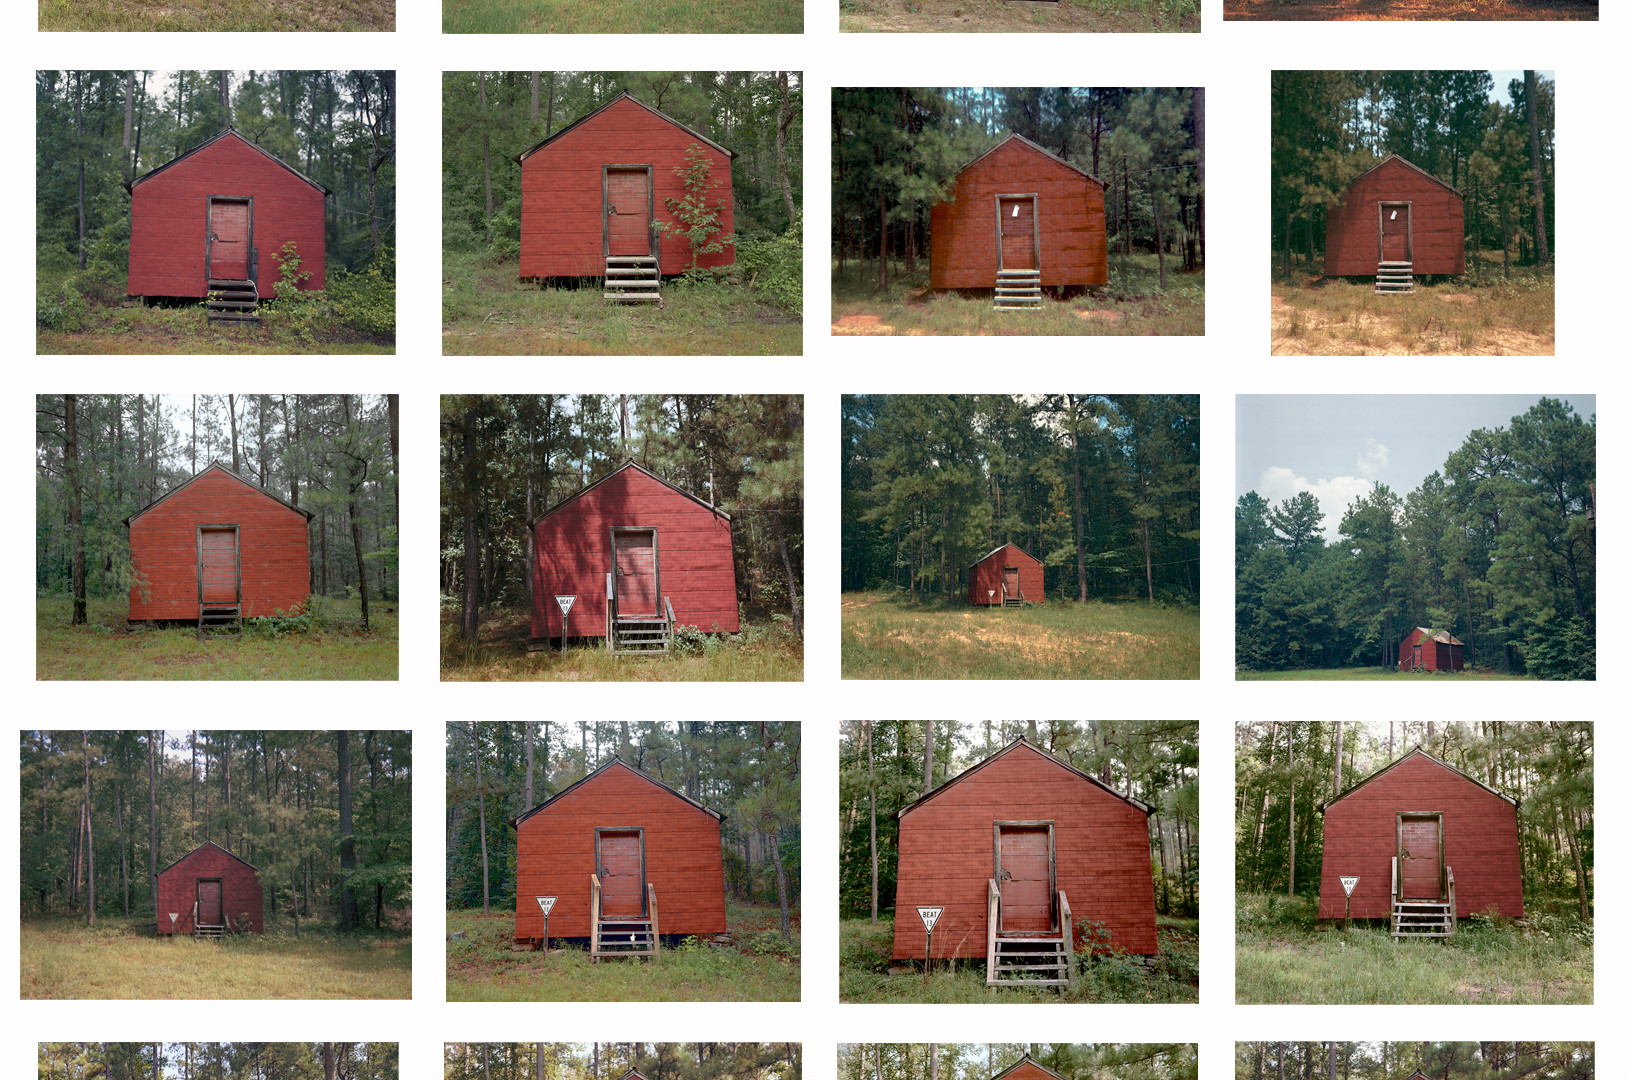 William Christenberry, Red Building in Forest, Hale County, Alabama, 1974-2004